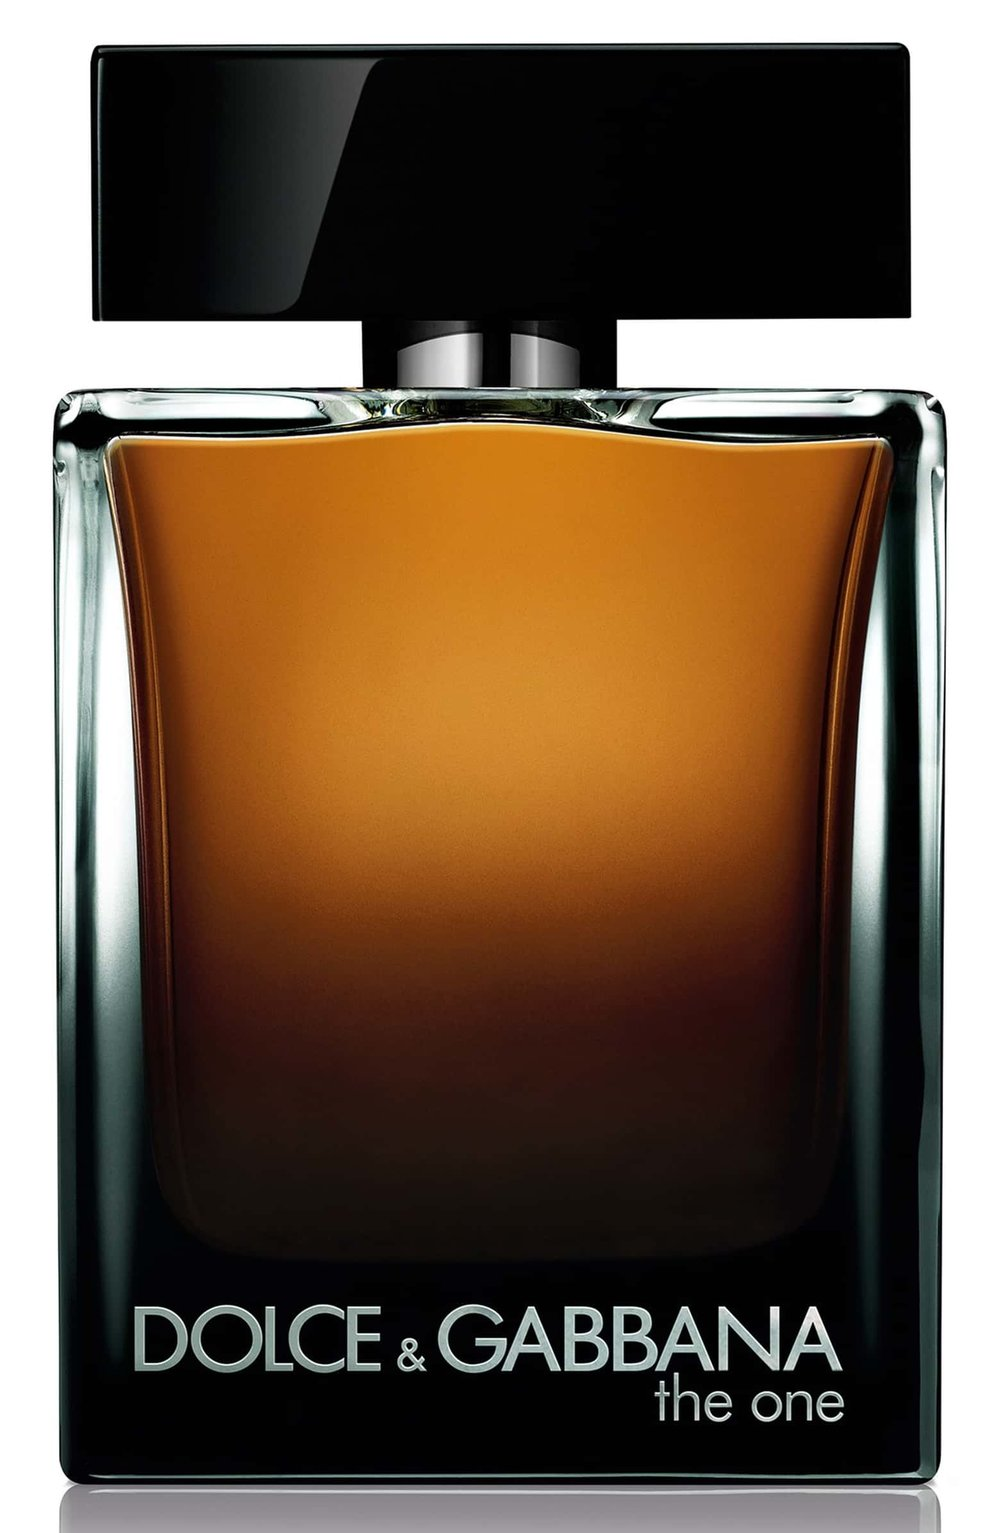 Dolce & Gabbana Colonge - This cologne smells amazing!